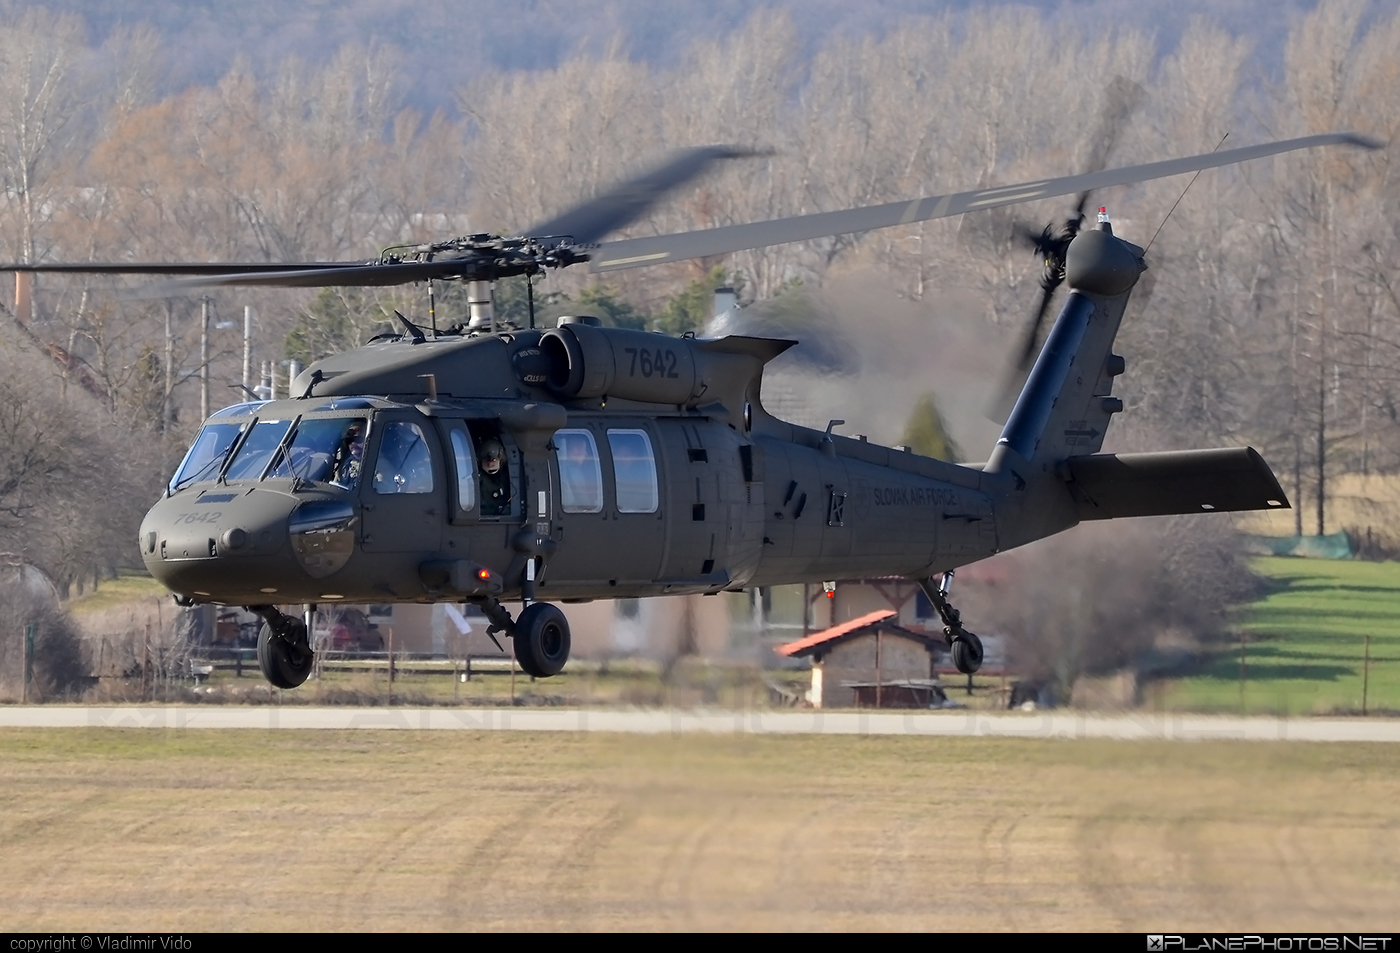 Sikorsky UH-60M Black Hawk - 7642 operated by Vzdušné sily OS SR (Slovak Air Force) #blackhawk #sikorsky #slovakairforce #uh60 #uh60blackhawk #uh60m #vzdusnesilyossr